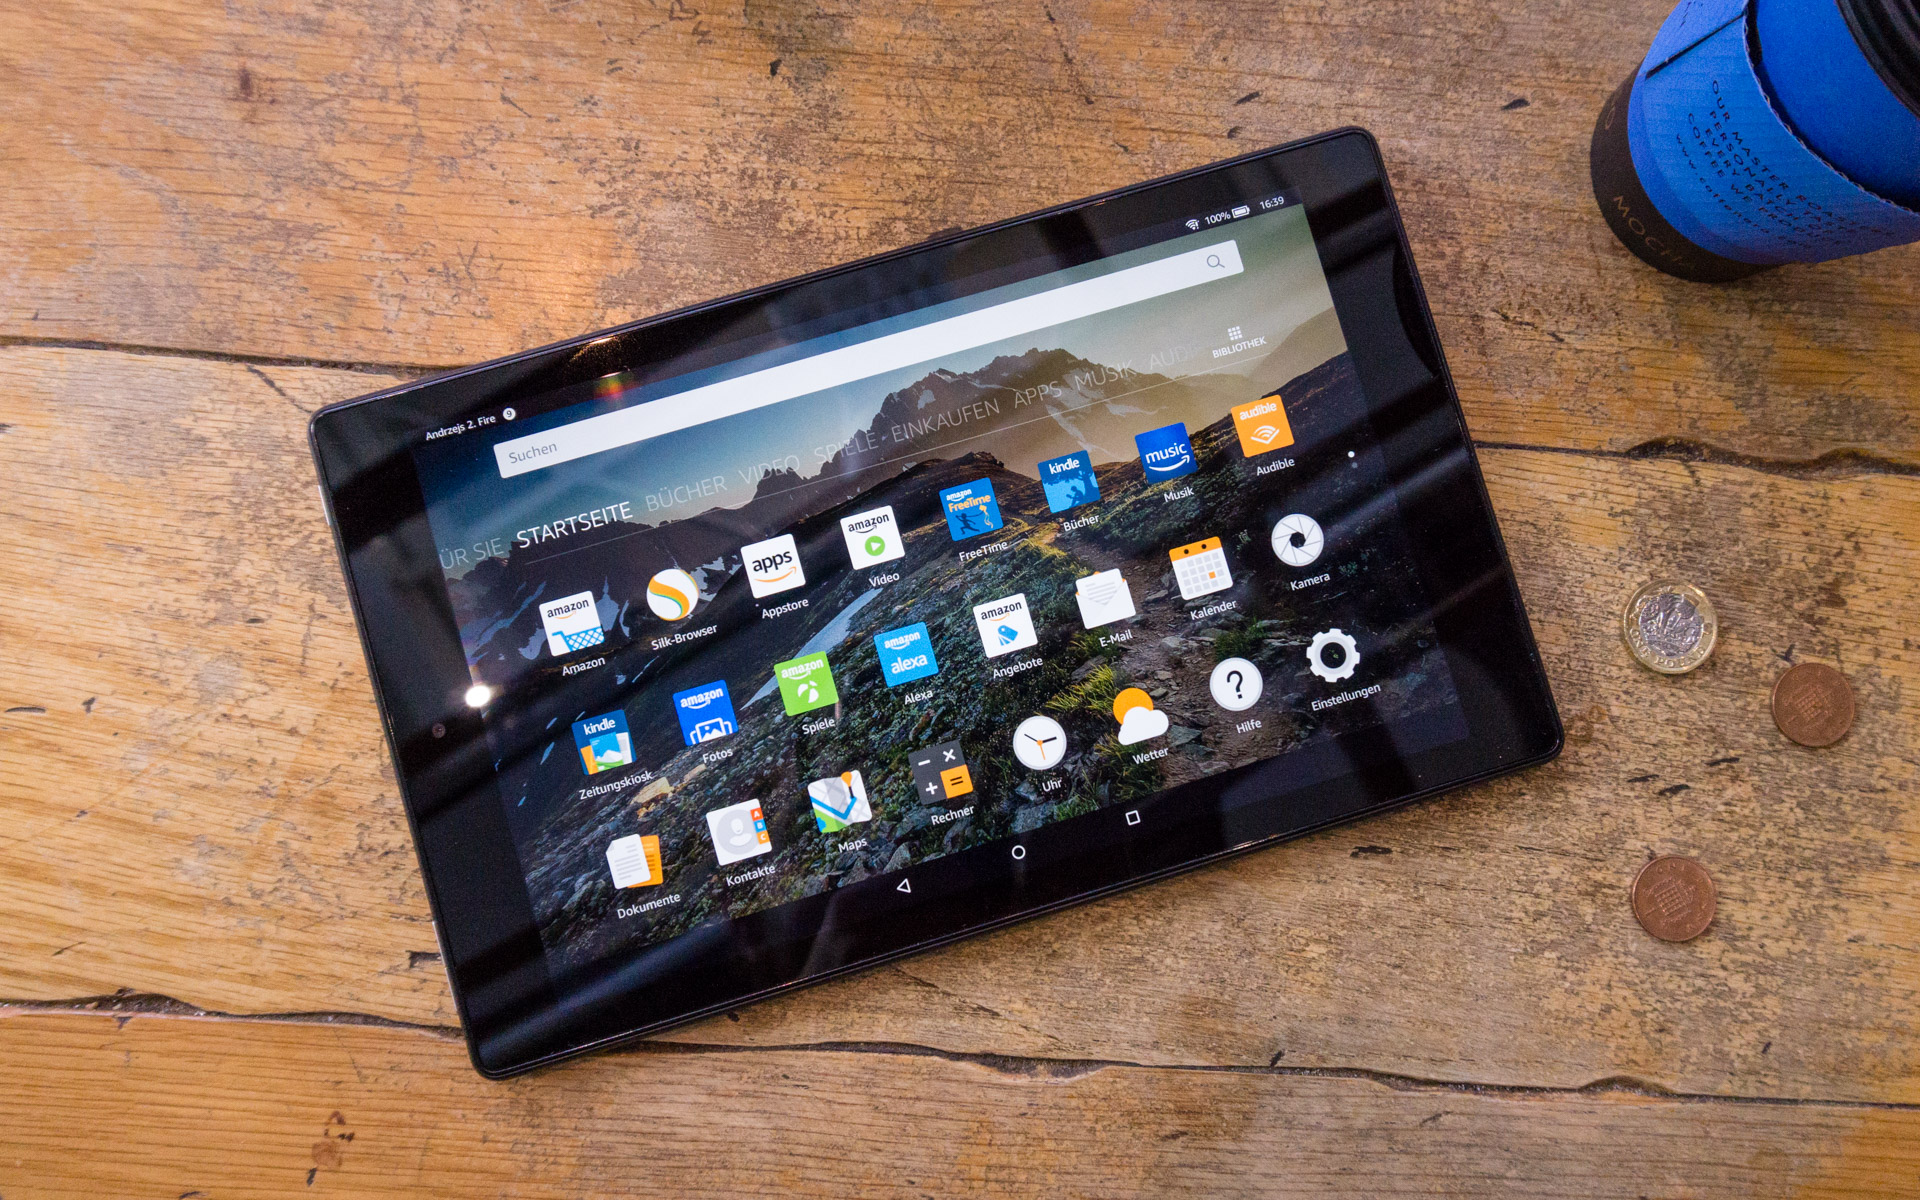 Amazon Fire Hd 10 7th Gen Everything You Need To Know